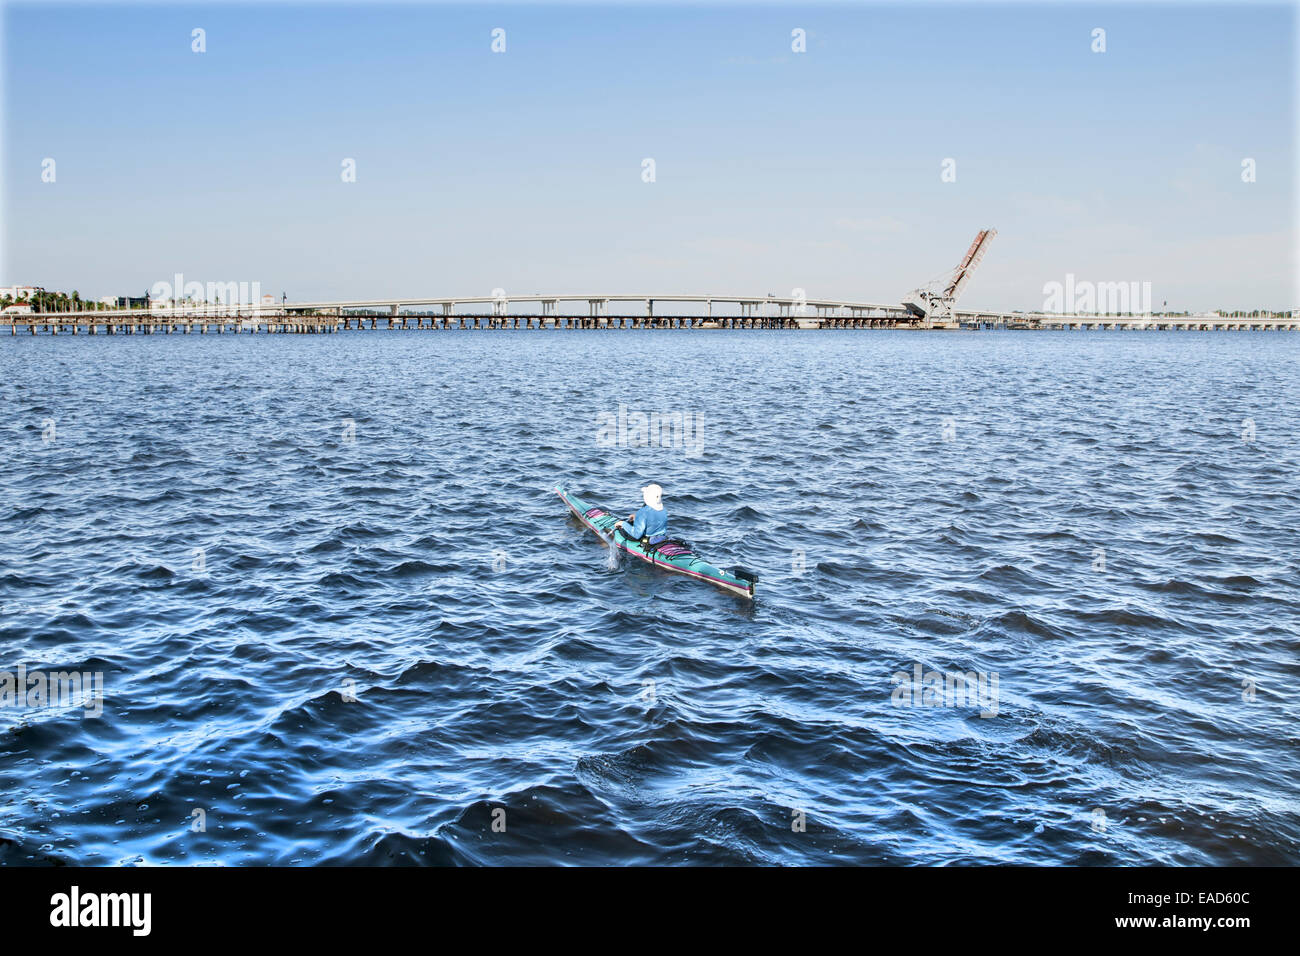 Unrecognizable man in a kayak paddling in the Manatee River, Bradenton, Florida - Stock Image